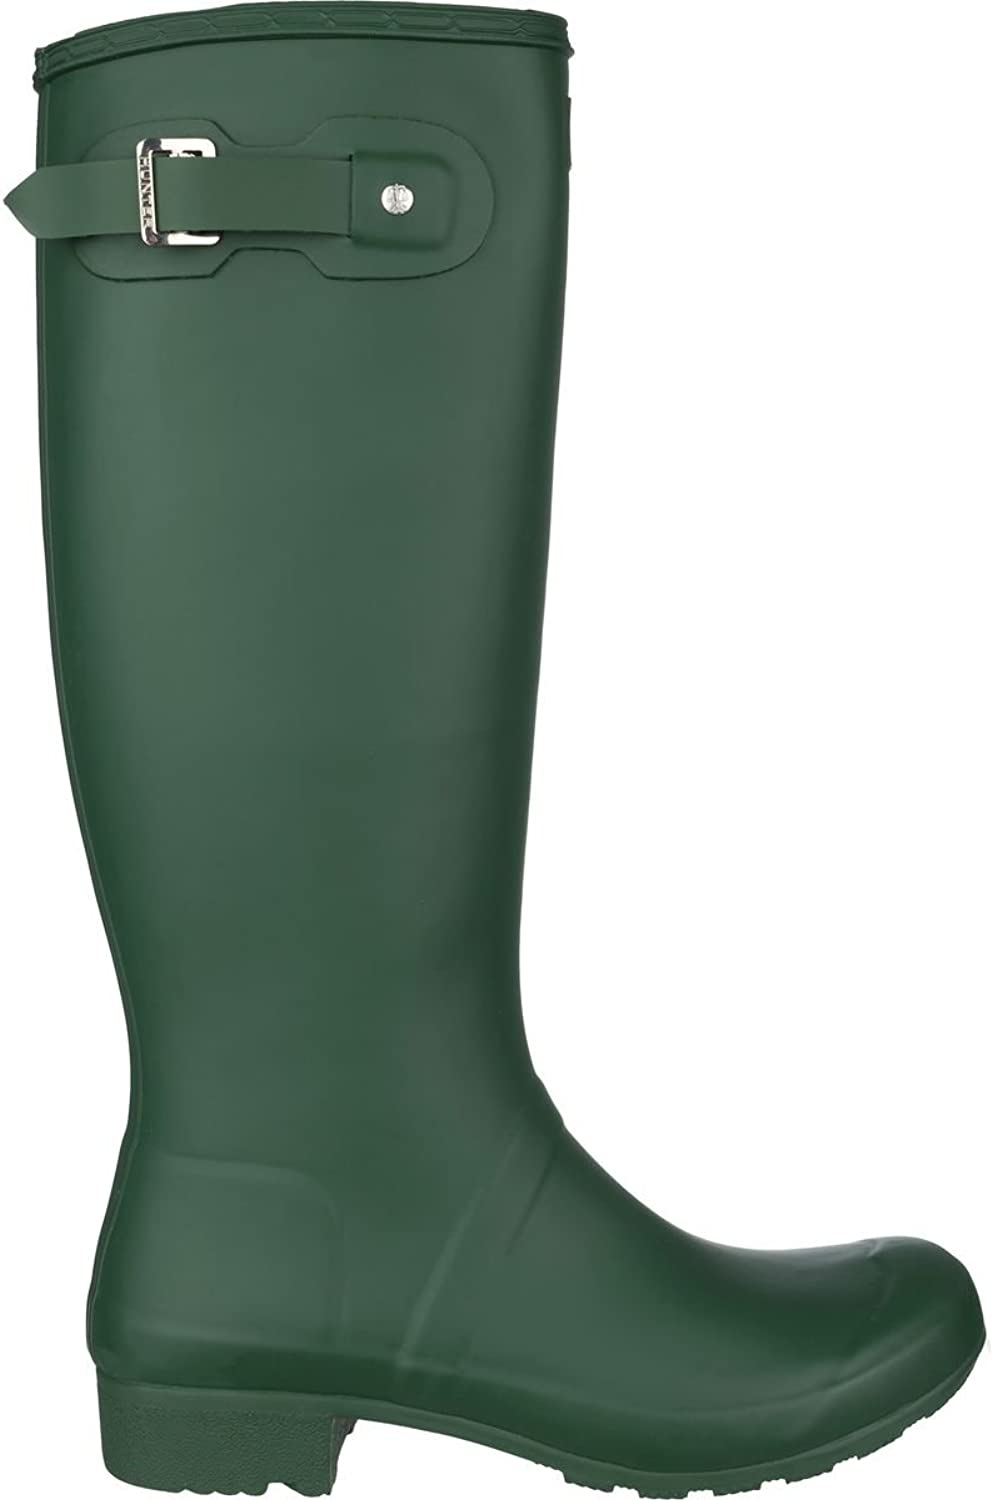 Womens Hunter Original Tour Rain Winter Snow Festival Wellington Boots